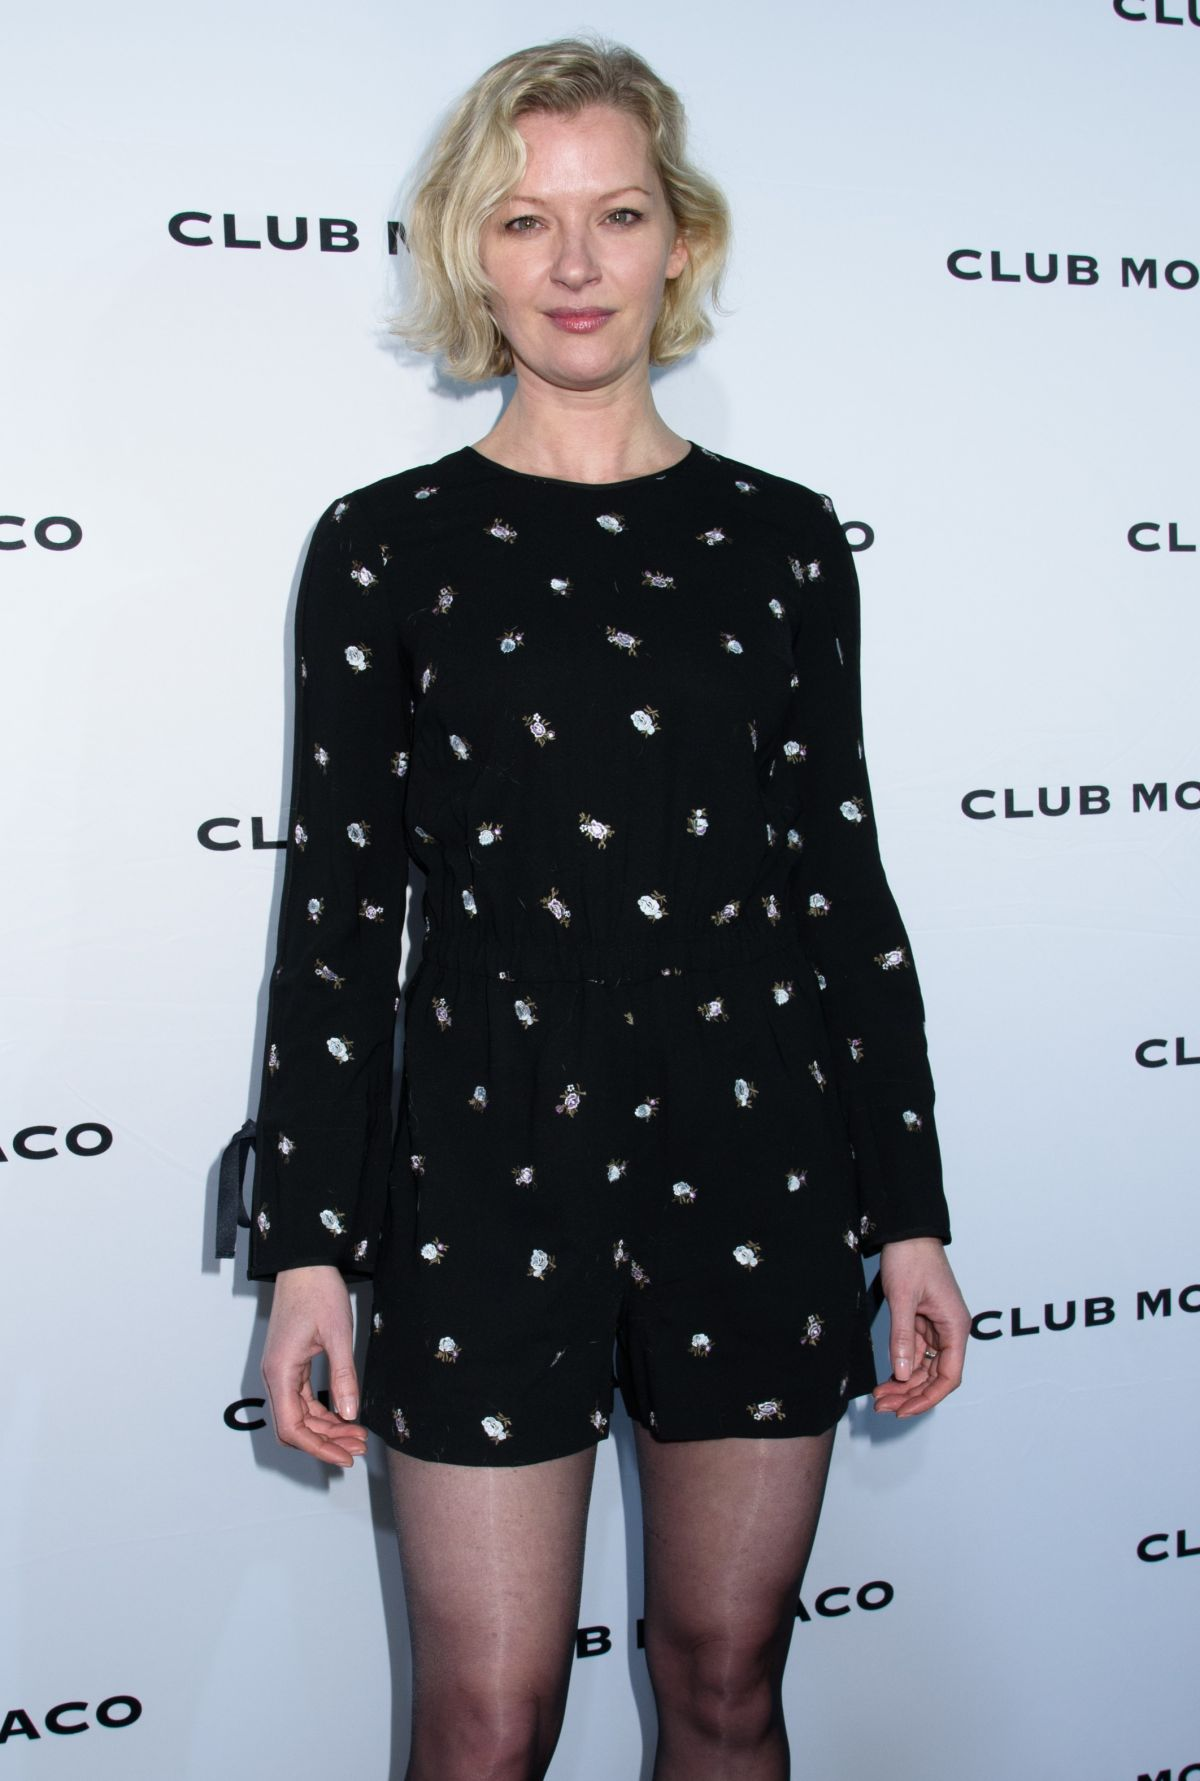 GRETCHEN MOL at Club Monaco Fashion Presentation in New York 02/10/2017